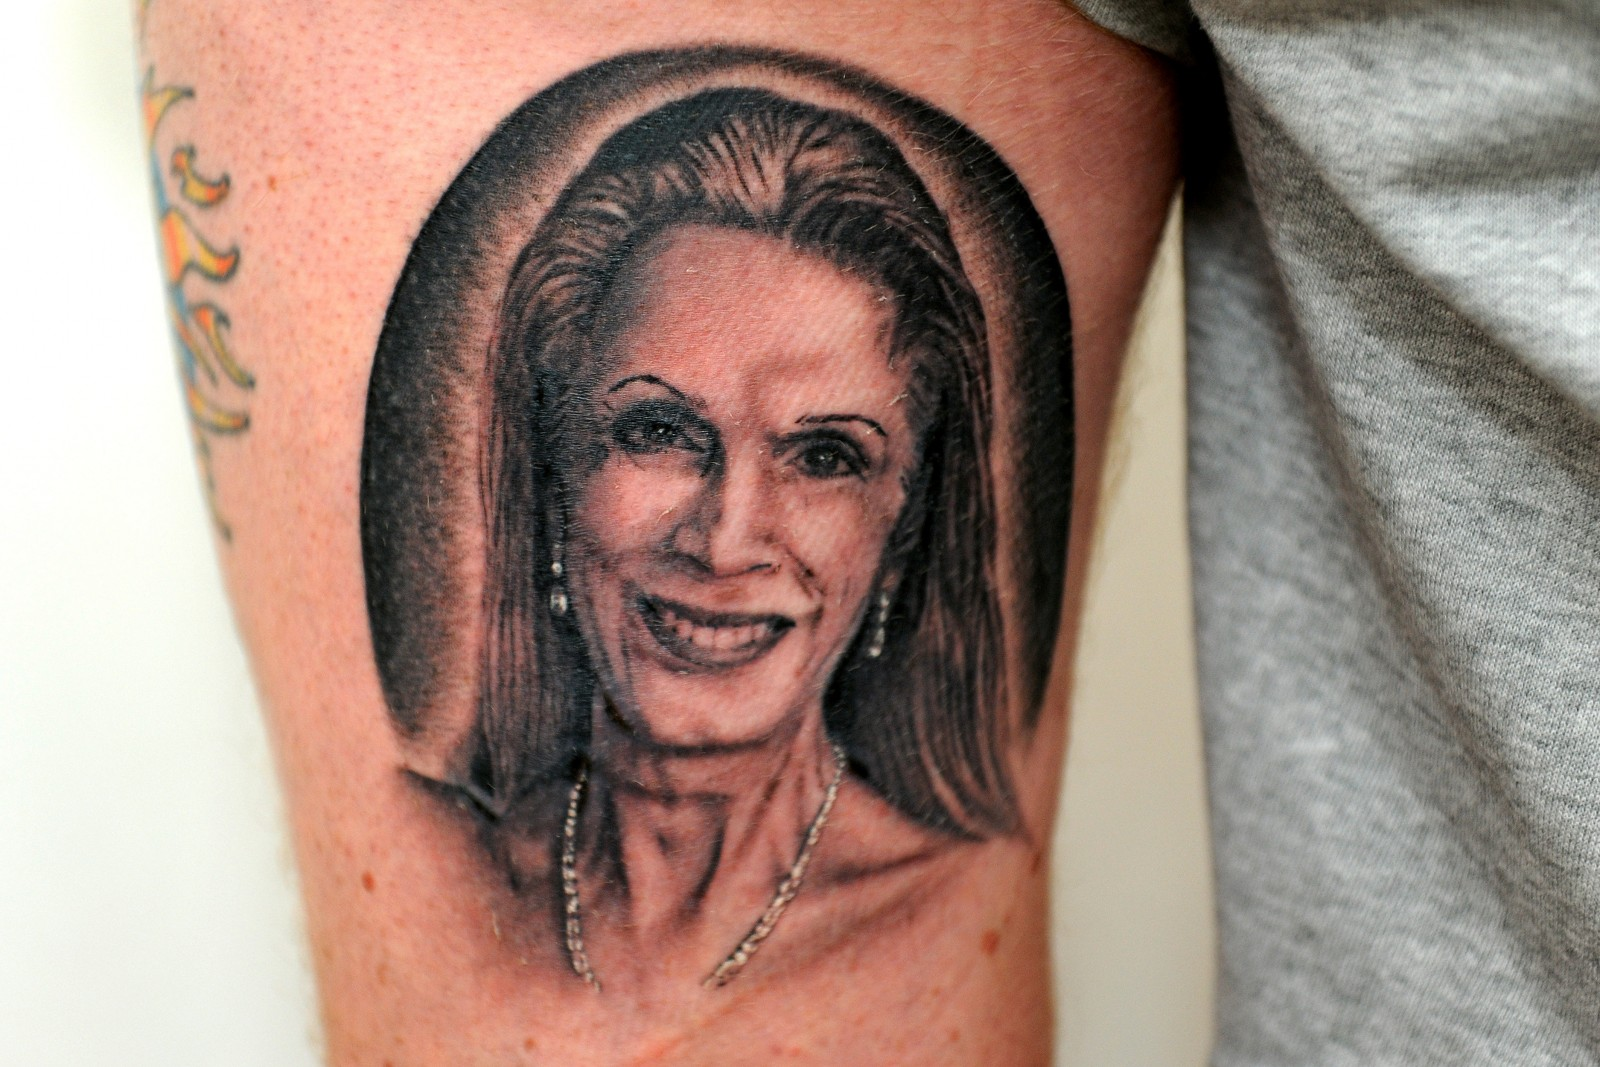 Richard shows off his tattoo of the controversial reality tv star